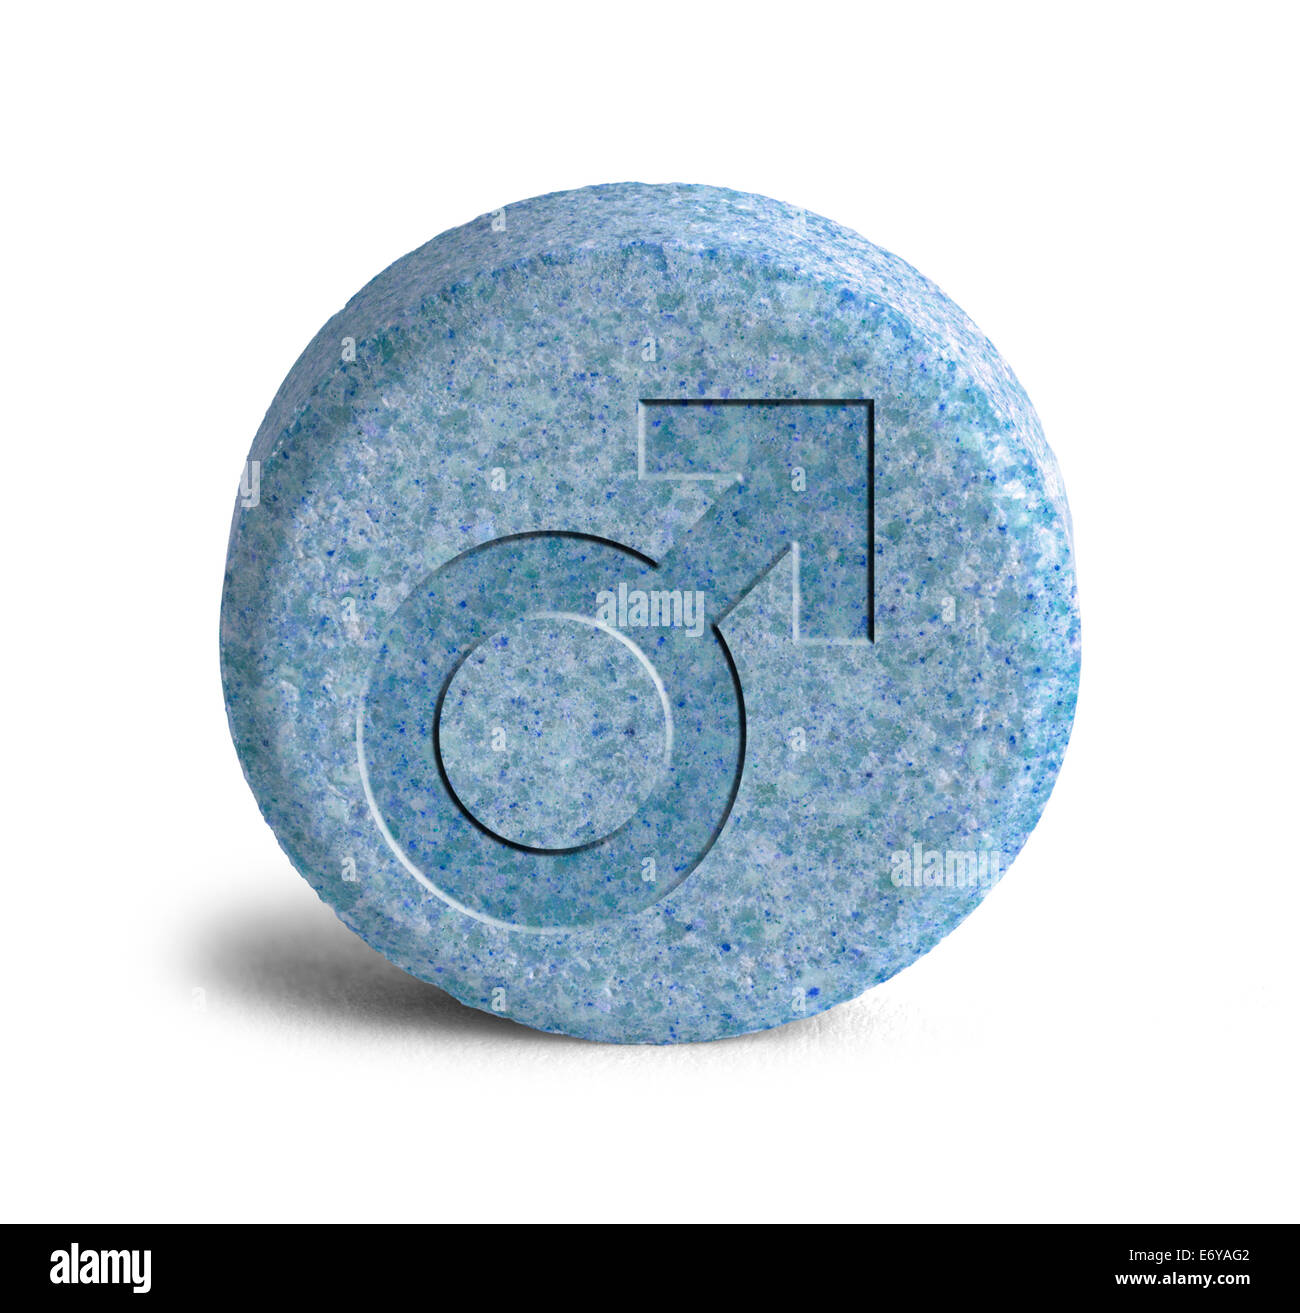 Large Blue Pill With a Male Symbol Isolated on White Background. - Stock Image